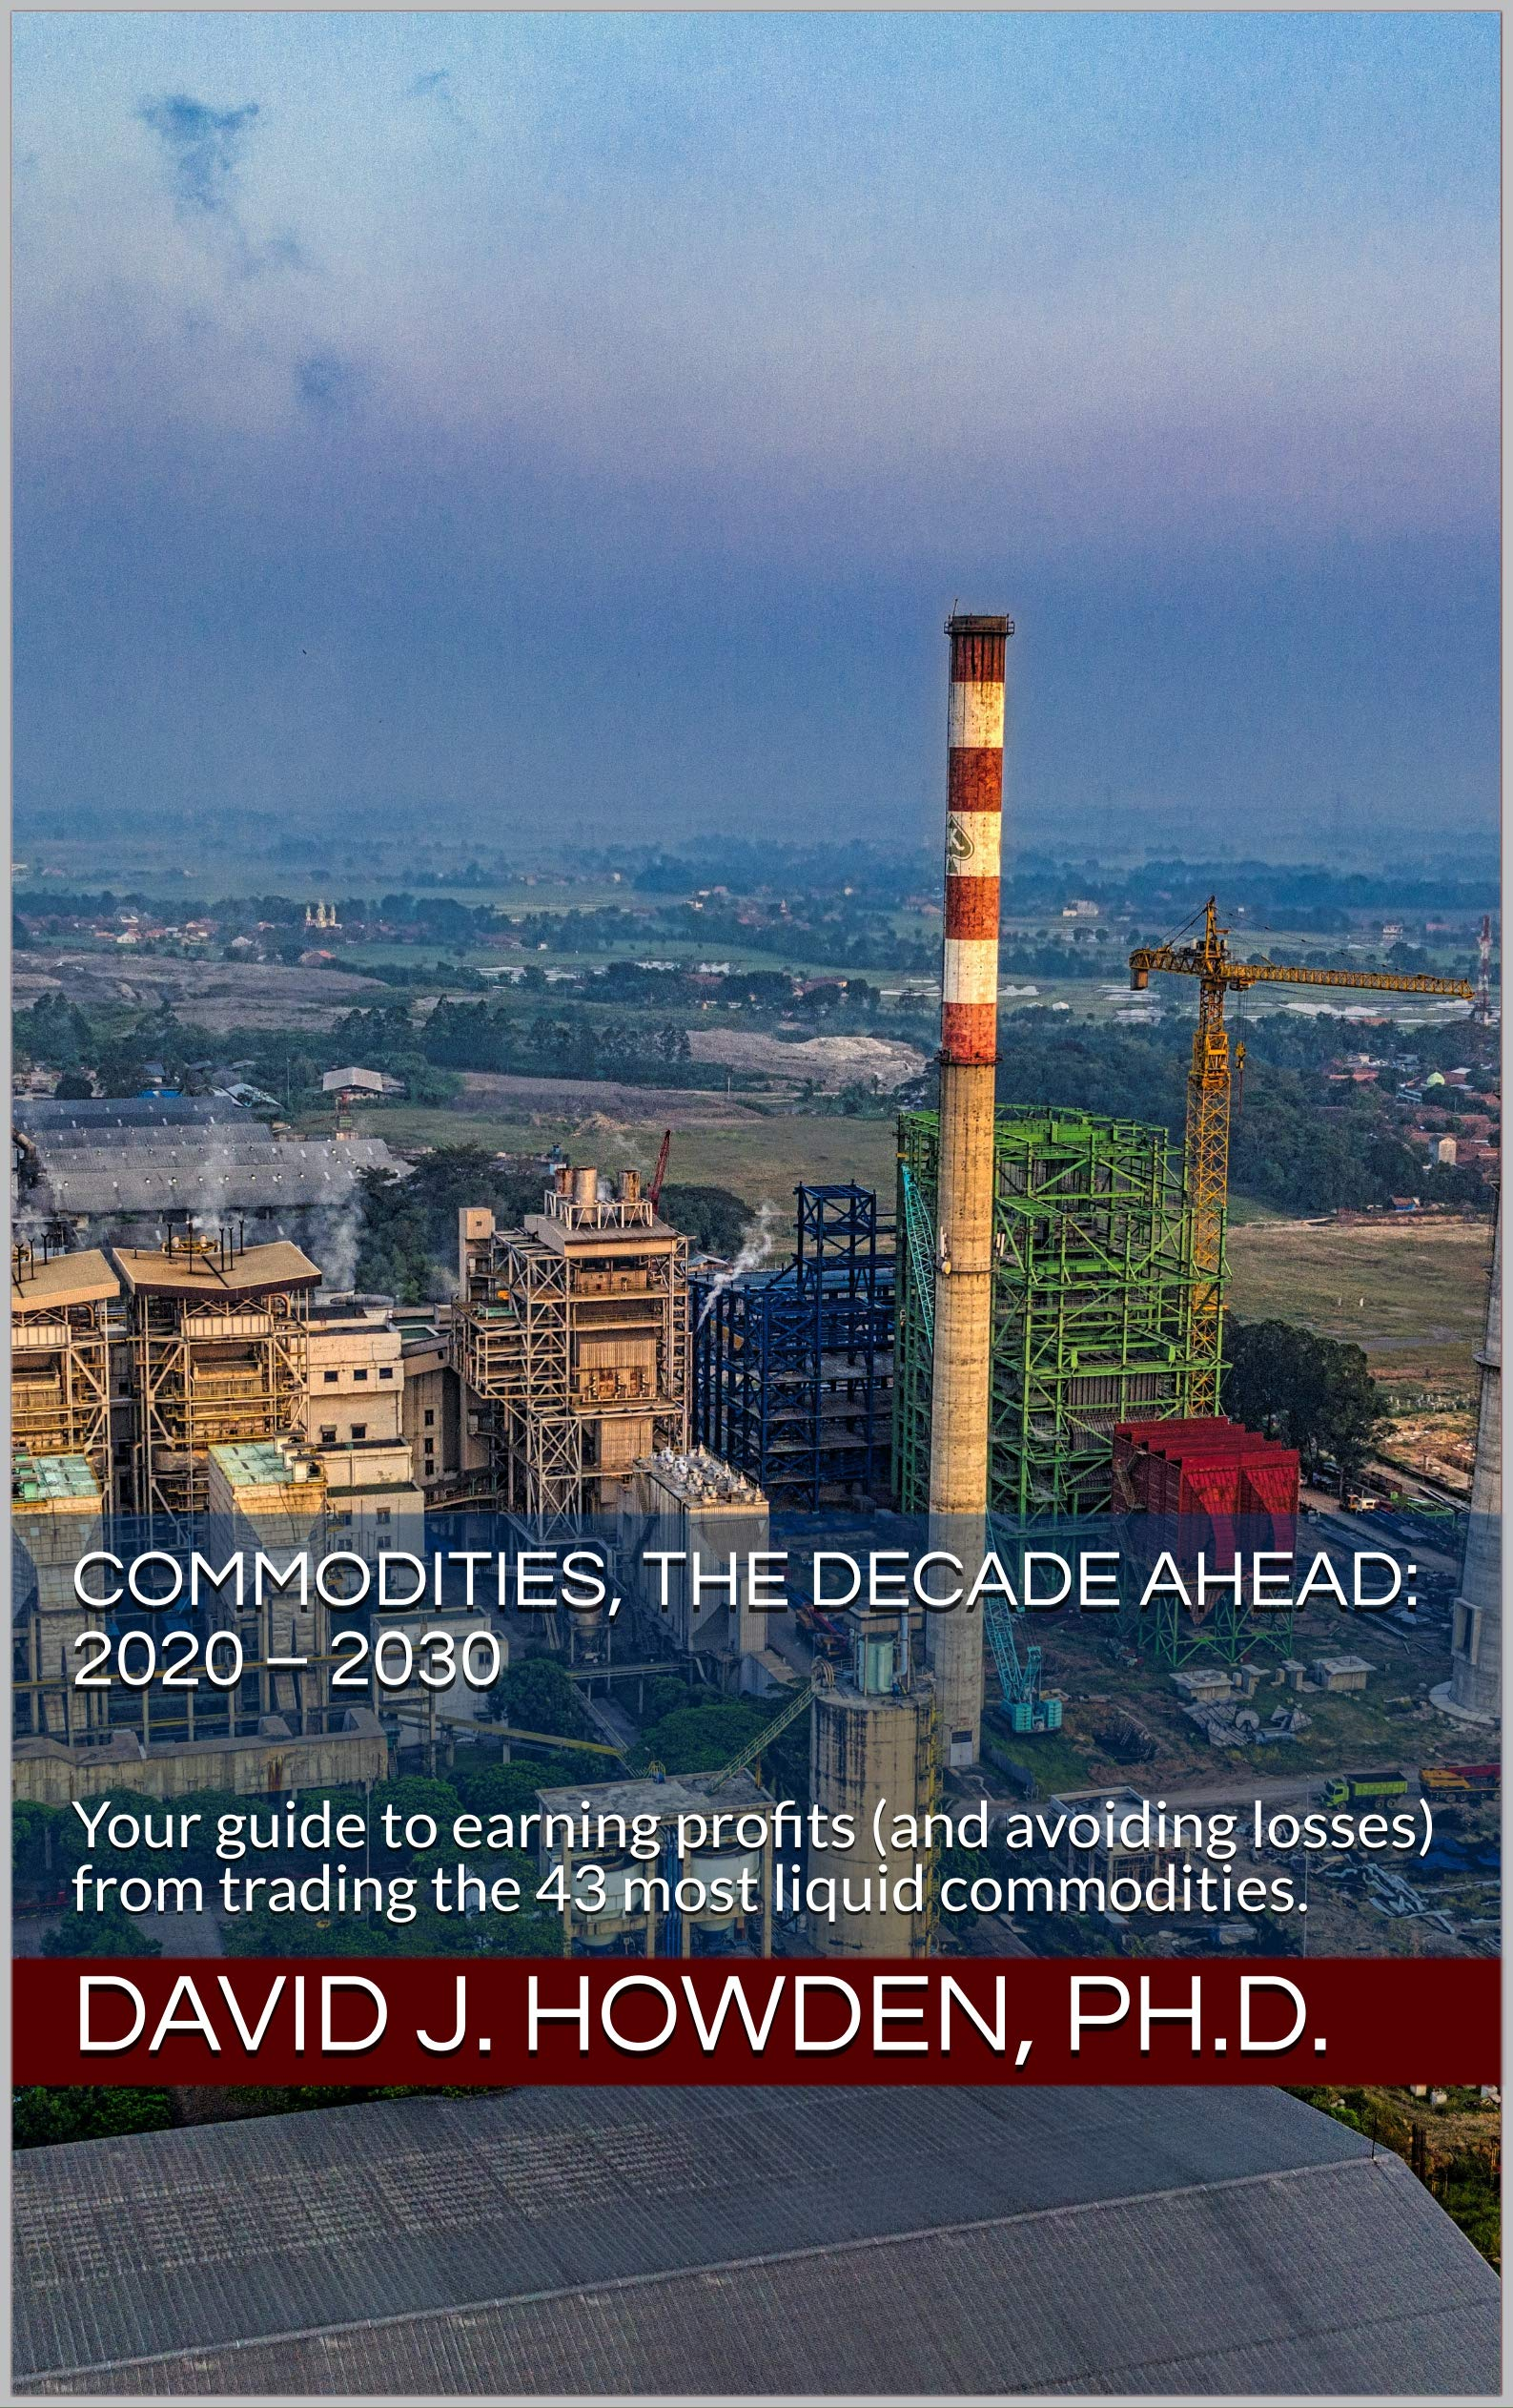 Commodities, the Decade Ahead: 2020 – 2030: Your guide to earning profits (and avoiding losses) from trading the 43 most liquid commodities